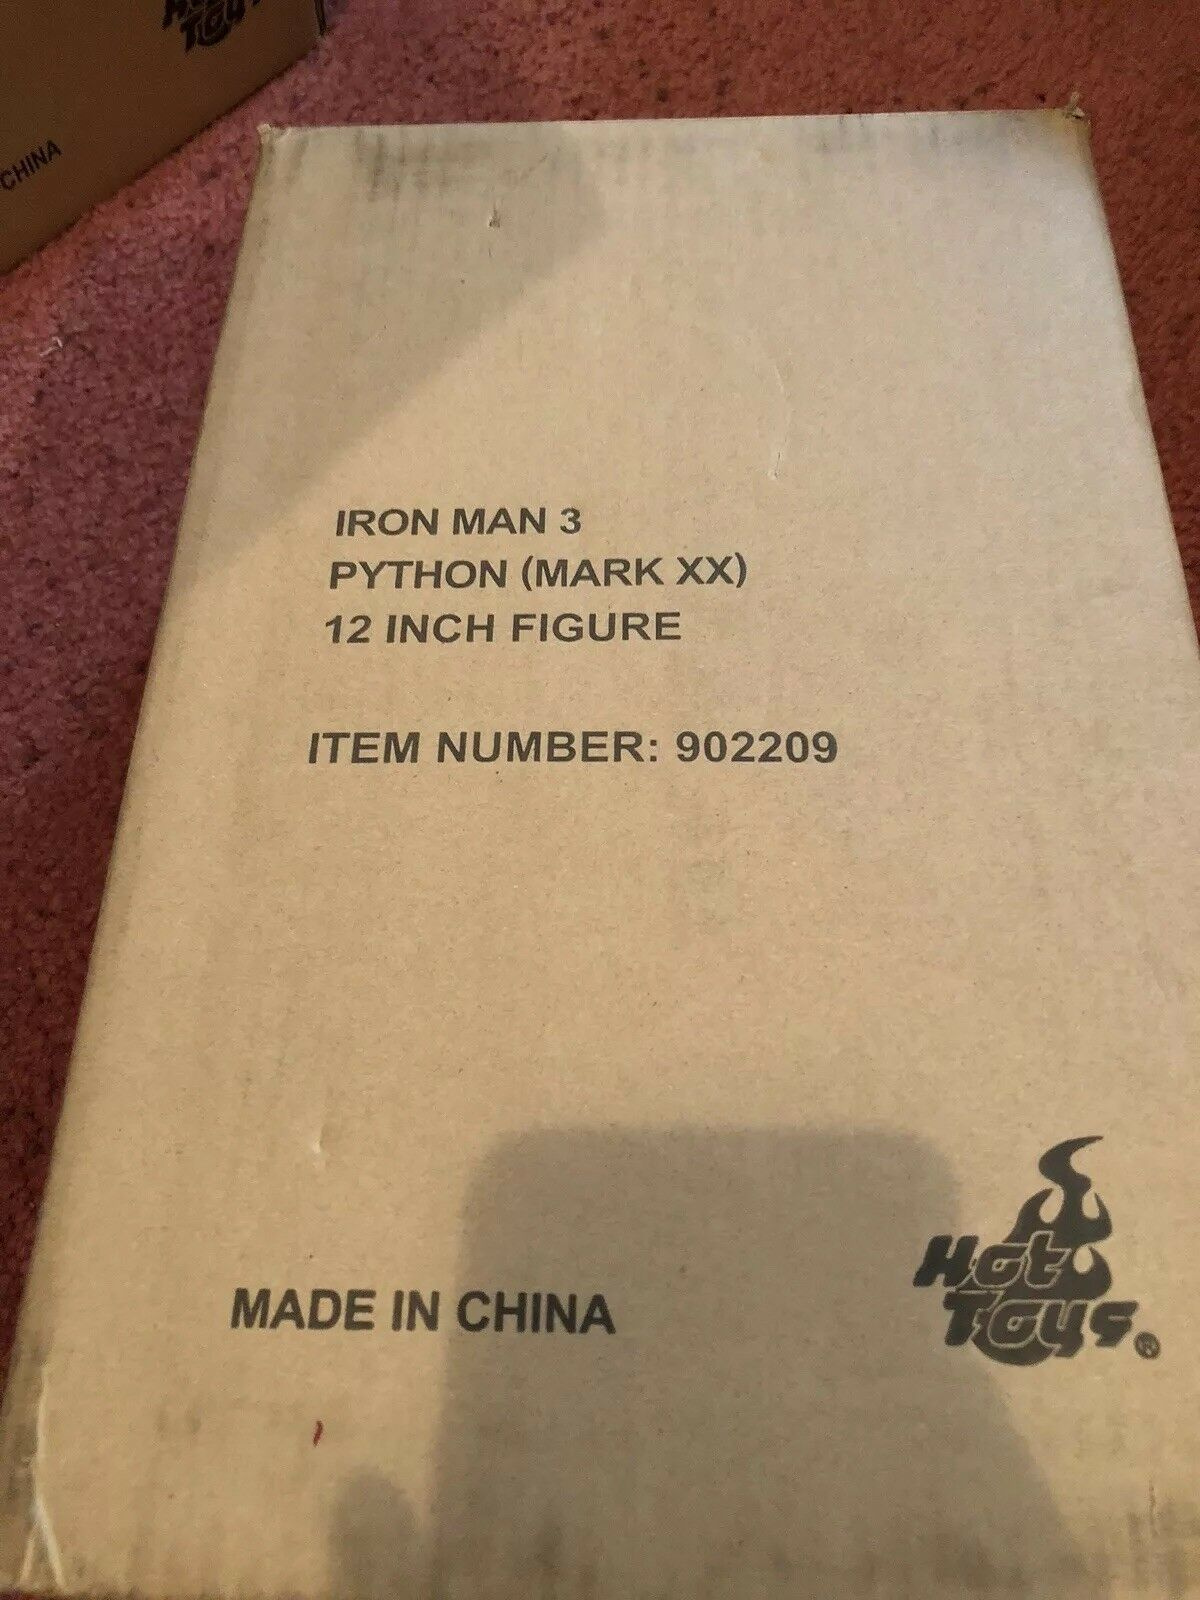 Hot Toys Iron Man PYTHON MARK MK 20 XX